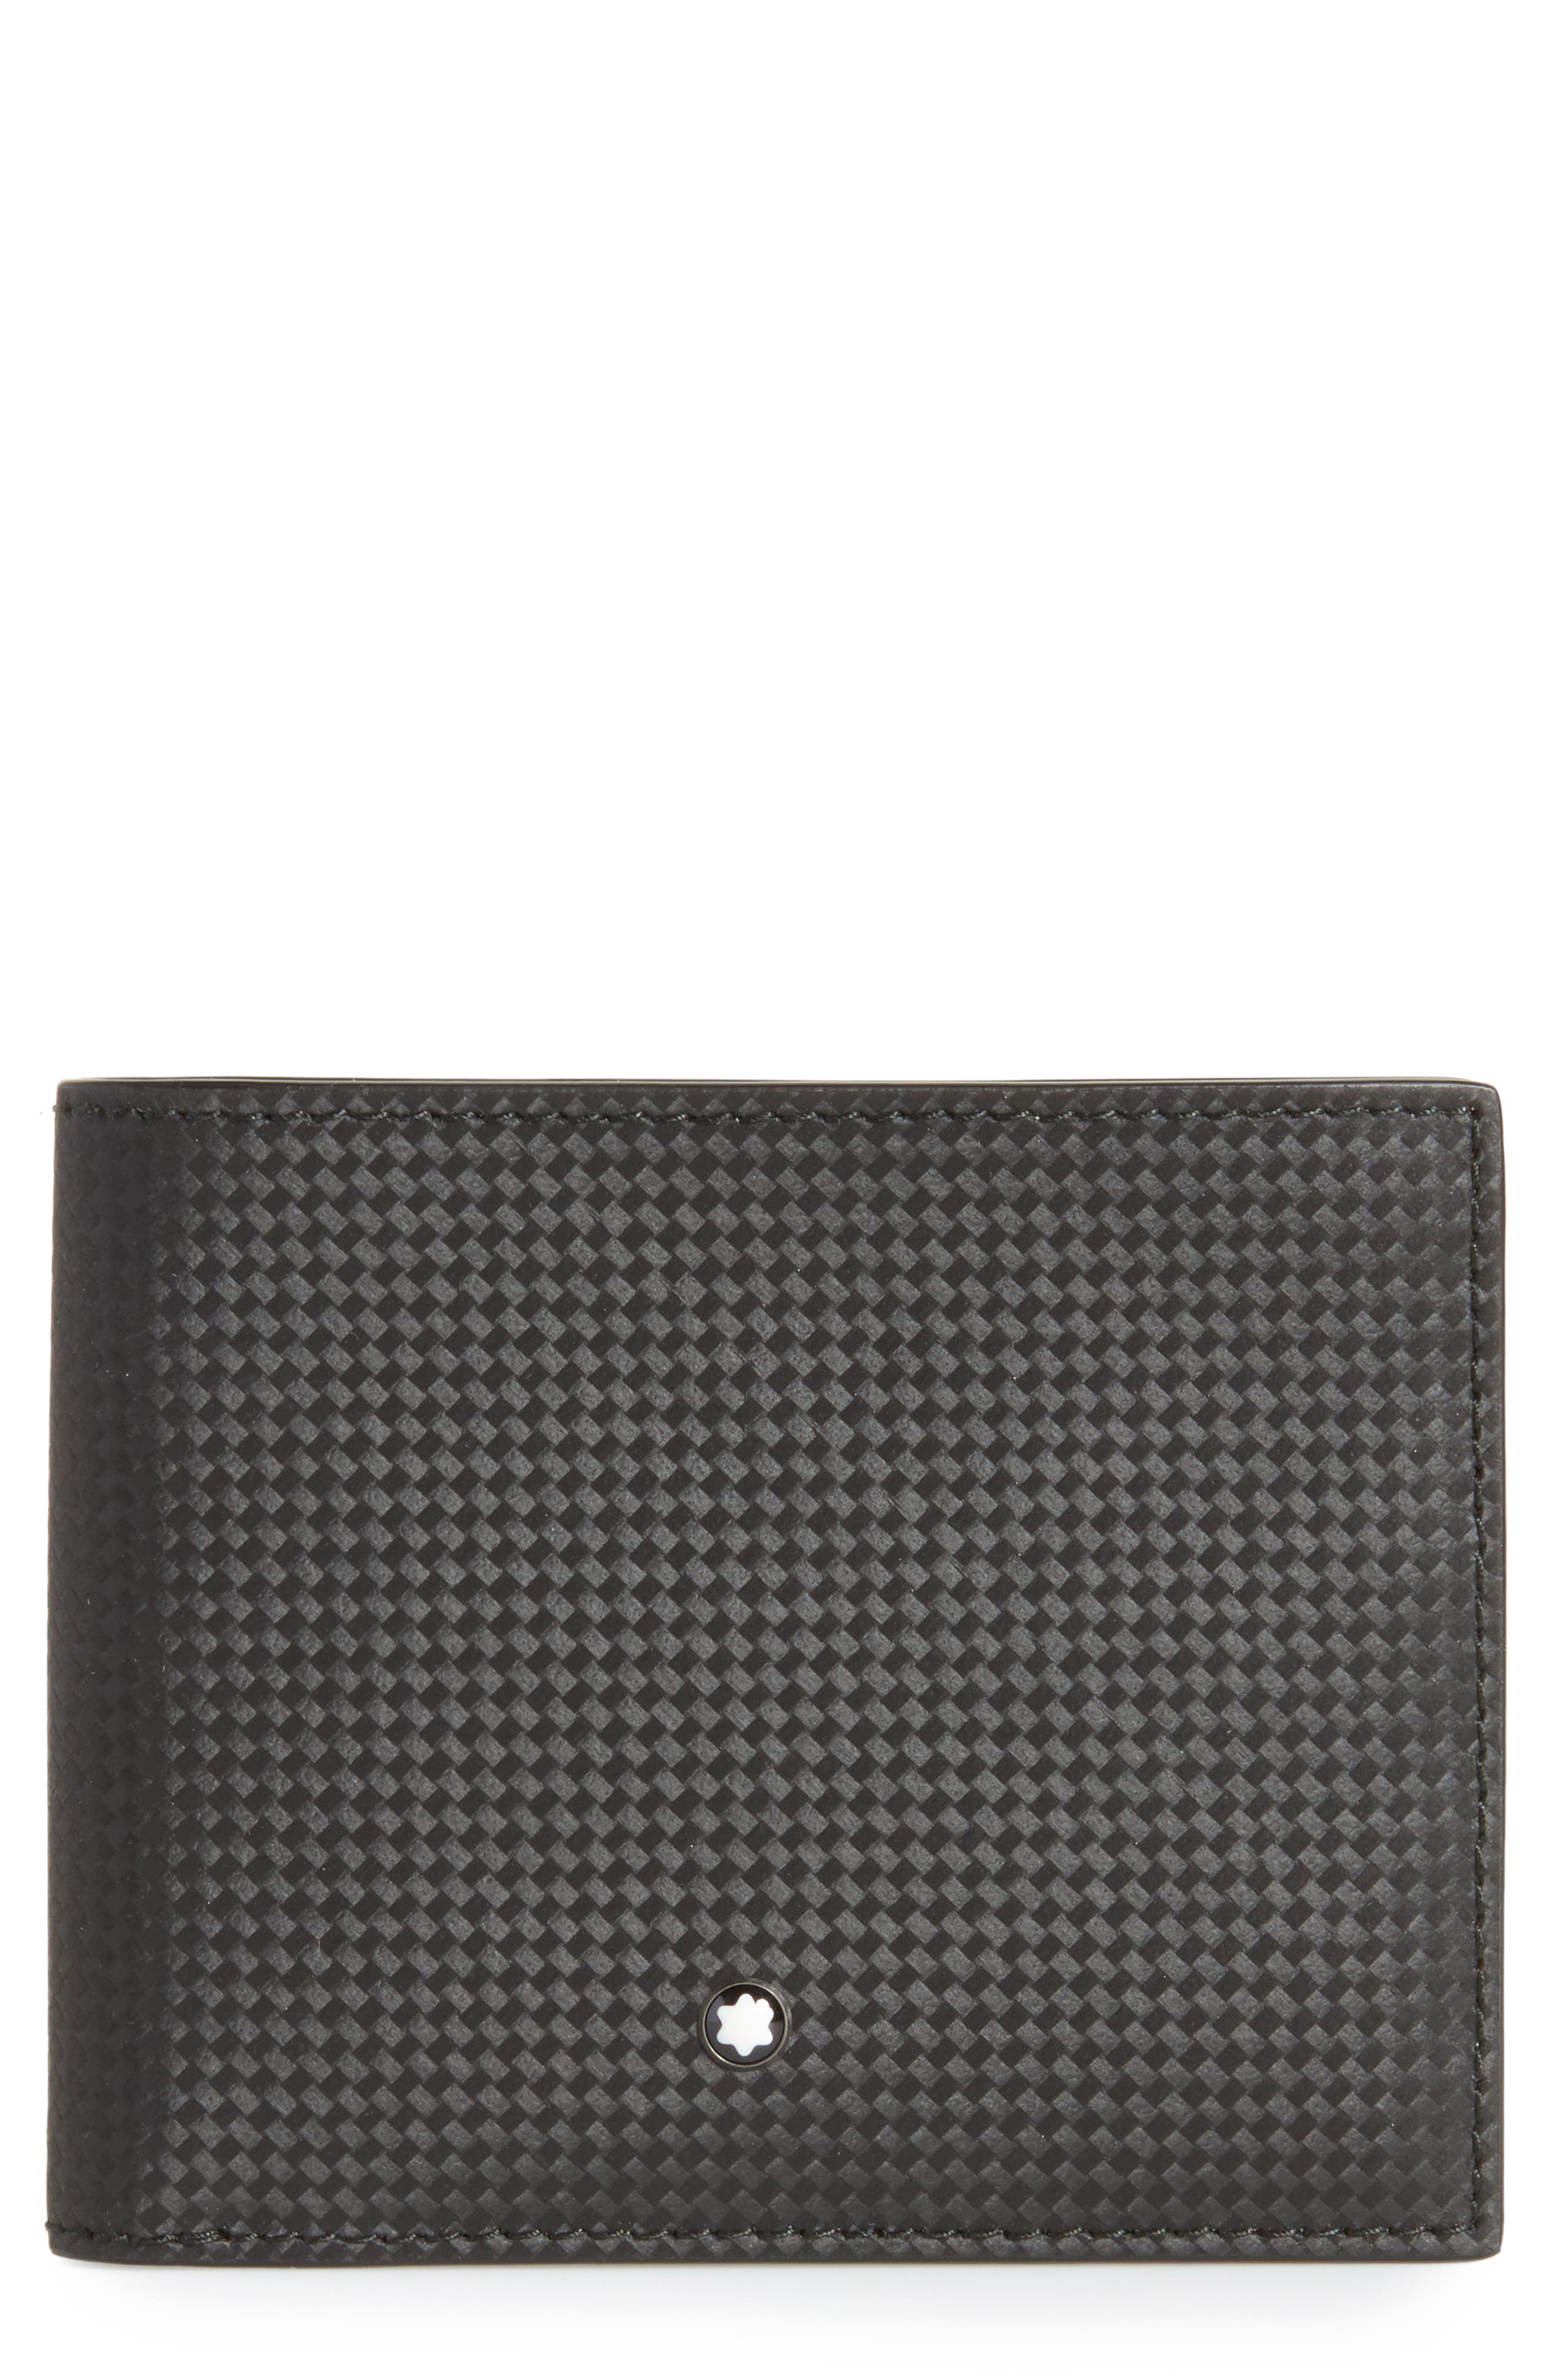 Extreme Leather Wallet,                         Main,                         color, BLACK